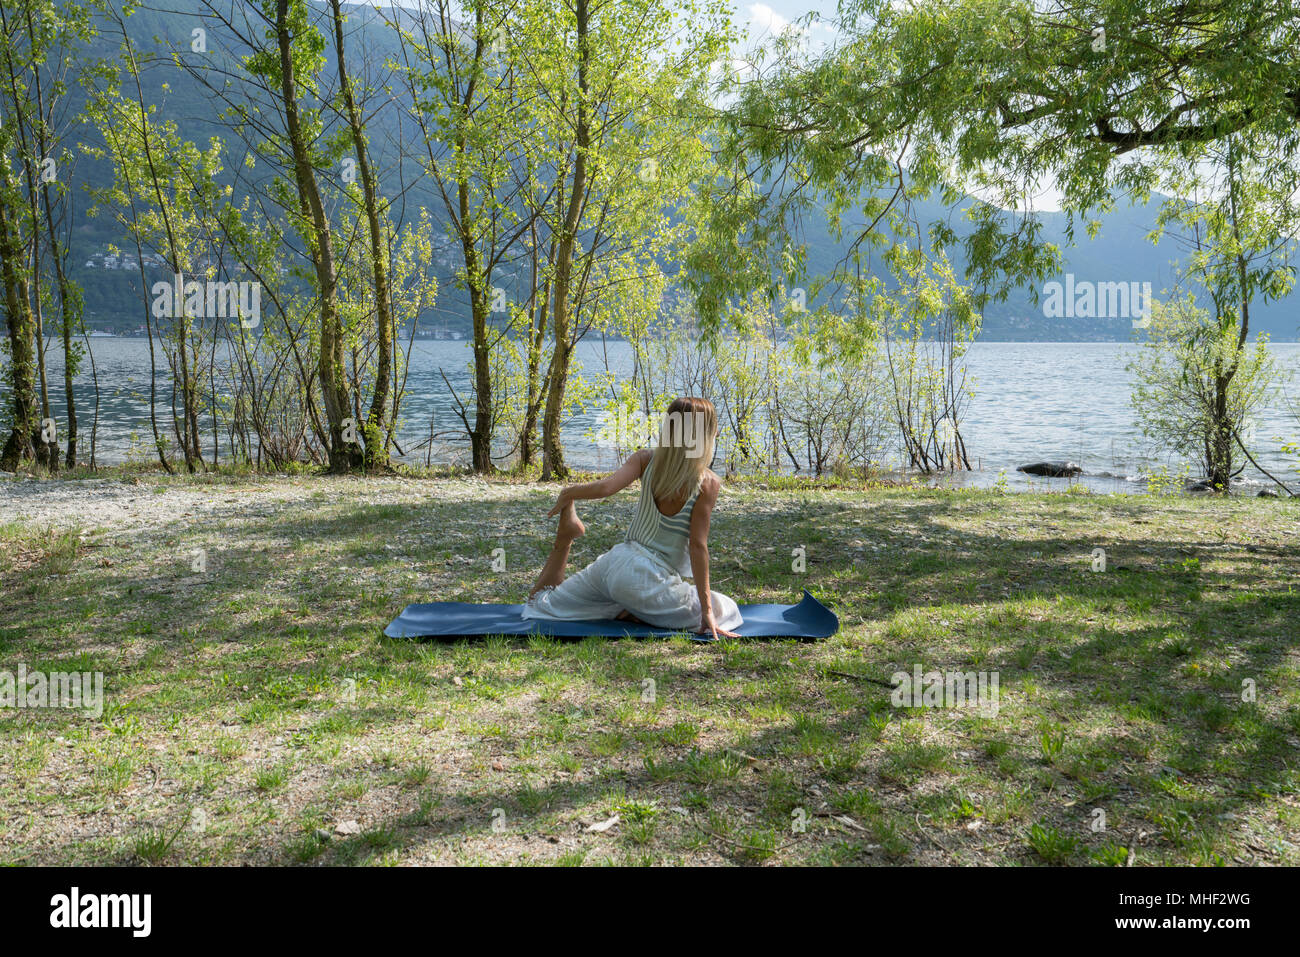 Young woman exercising yoga by the lake and mountains, shot in Ticino Canton, Switzerland, Europe. People relaxation wellbeing concept Stock Photo